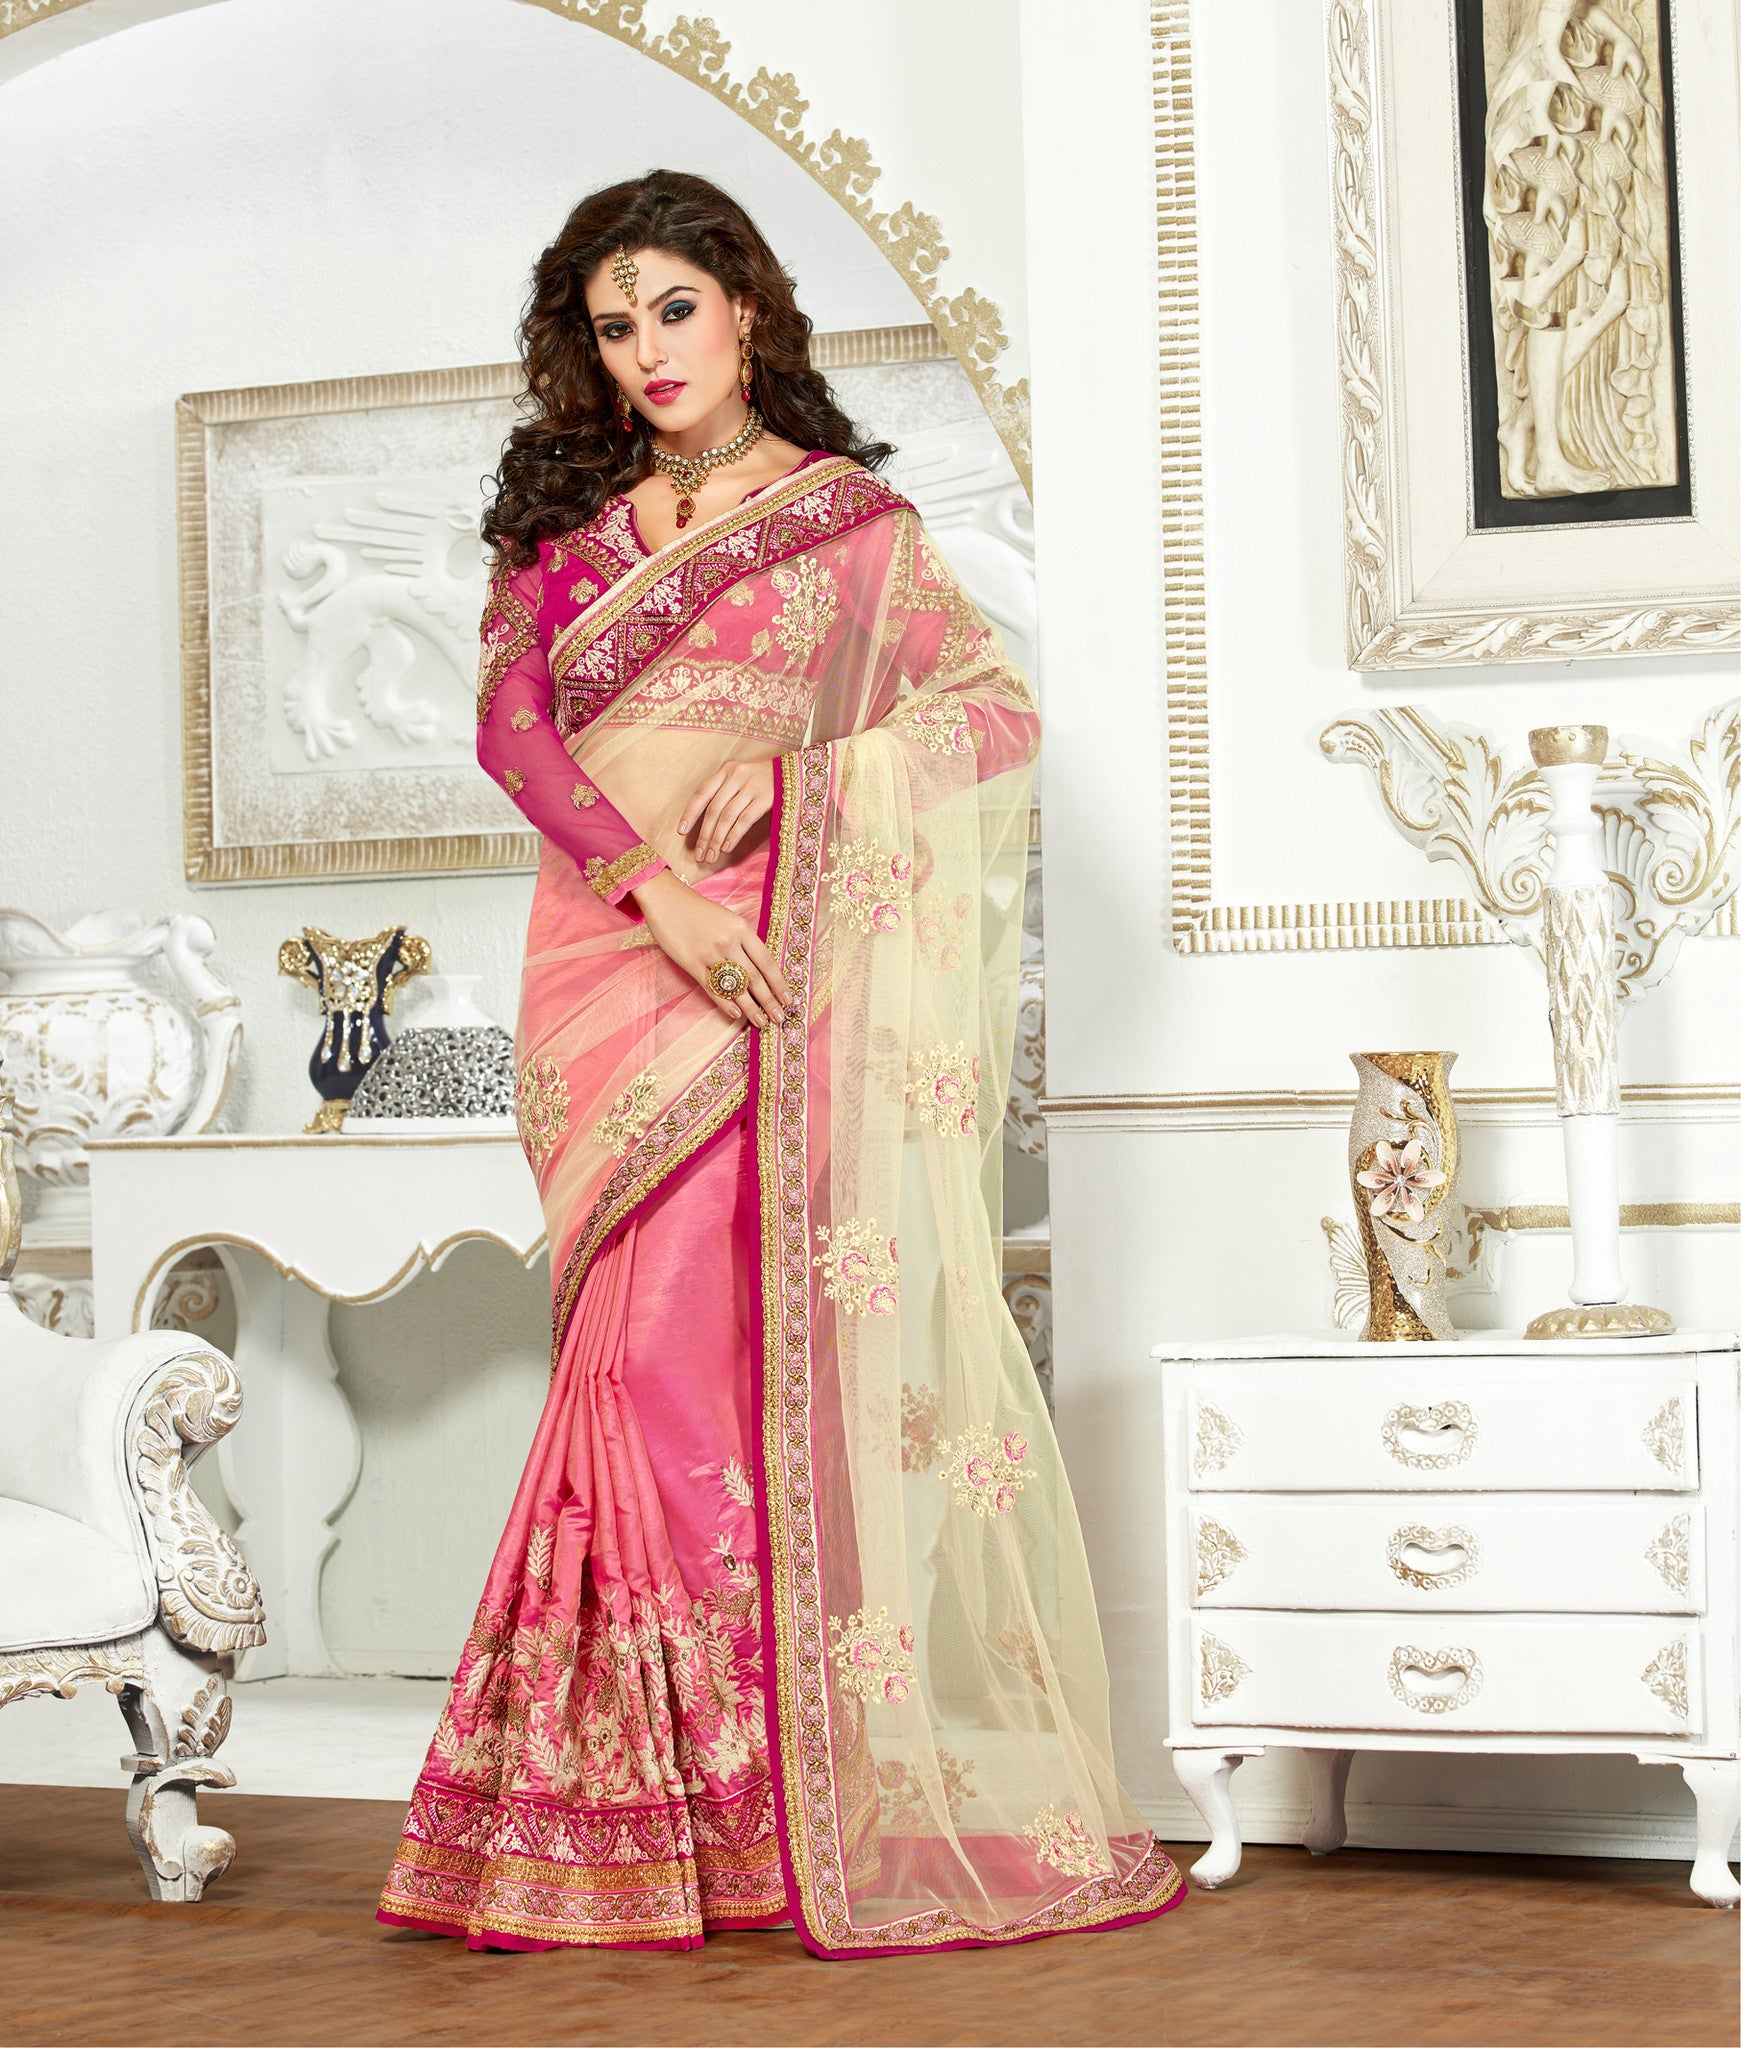 Pink and Beige Paper Silk and Net Saree.